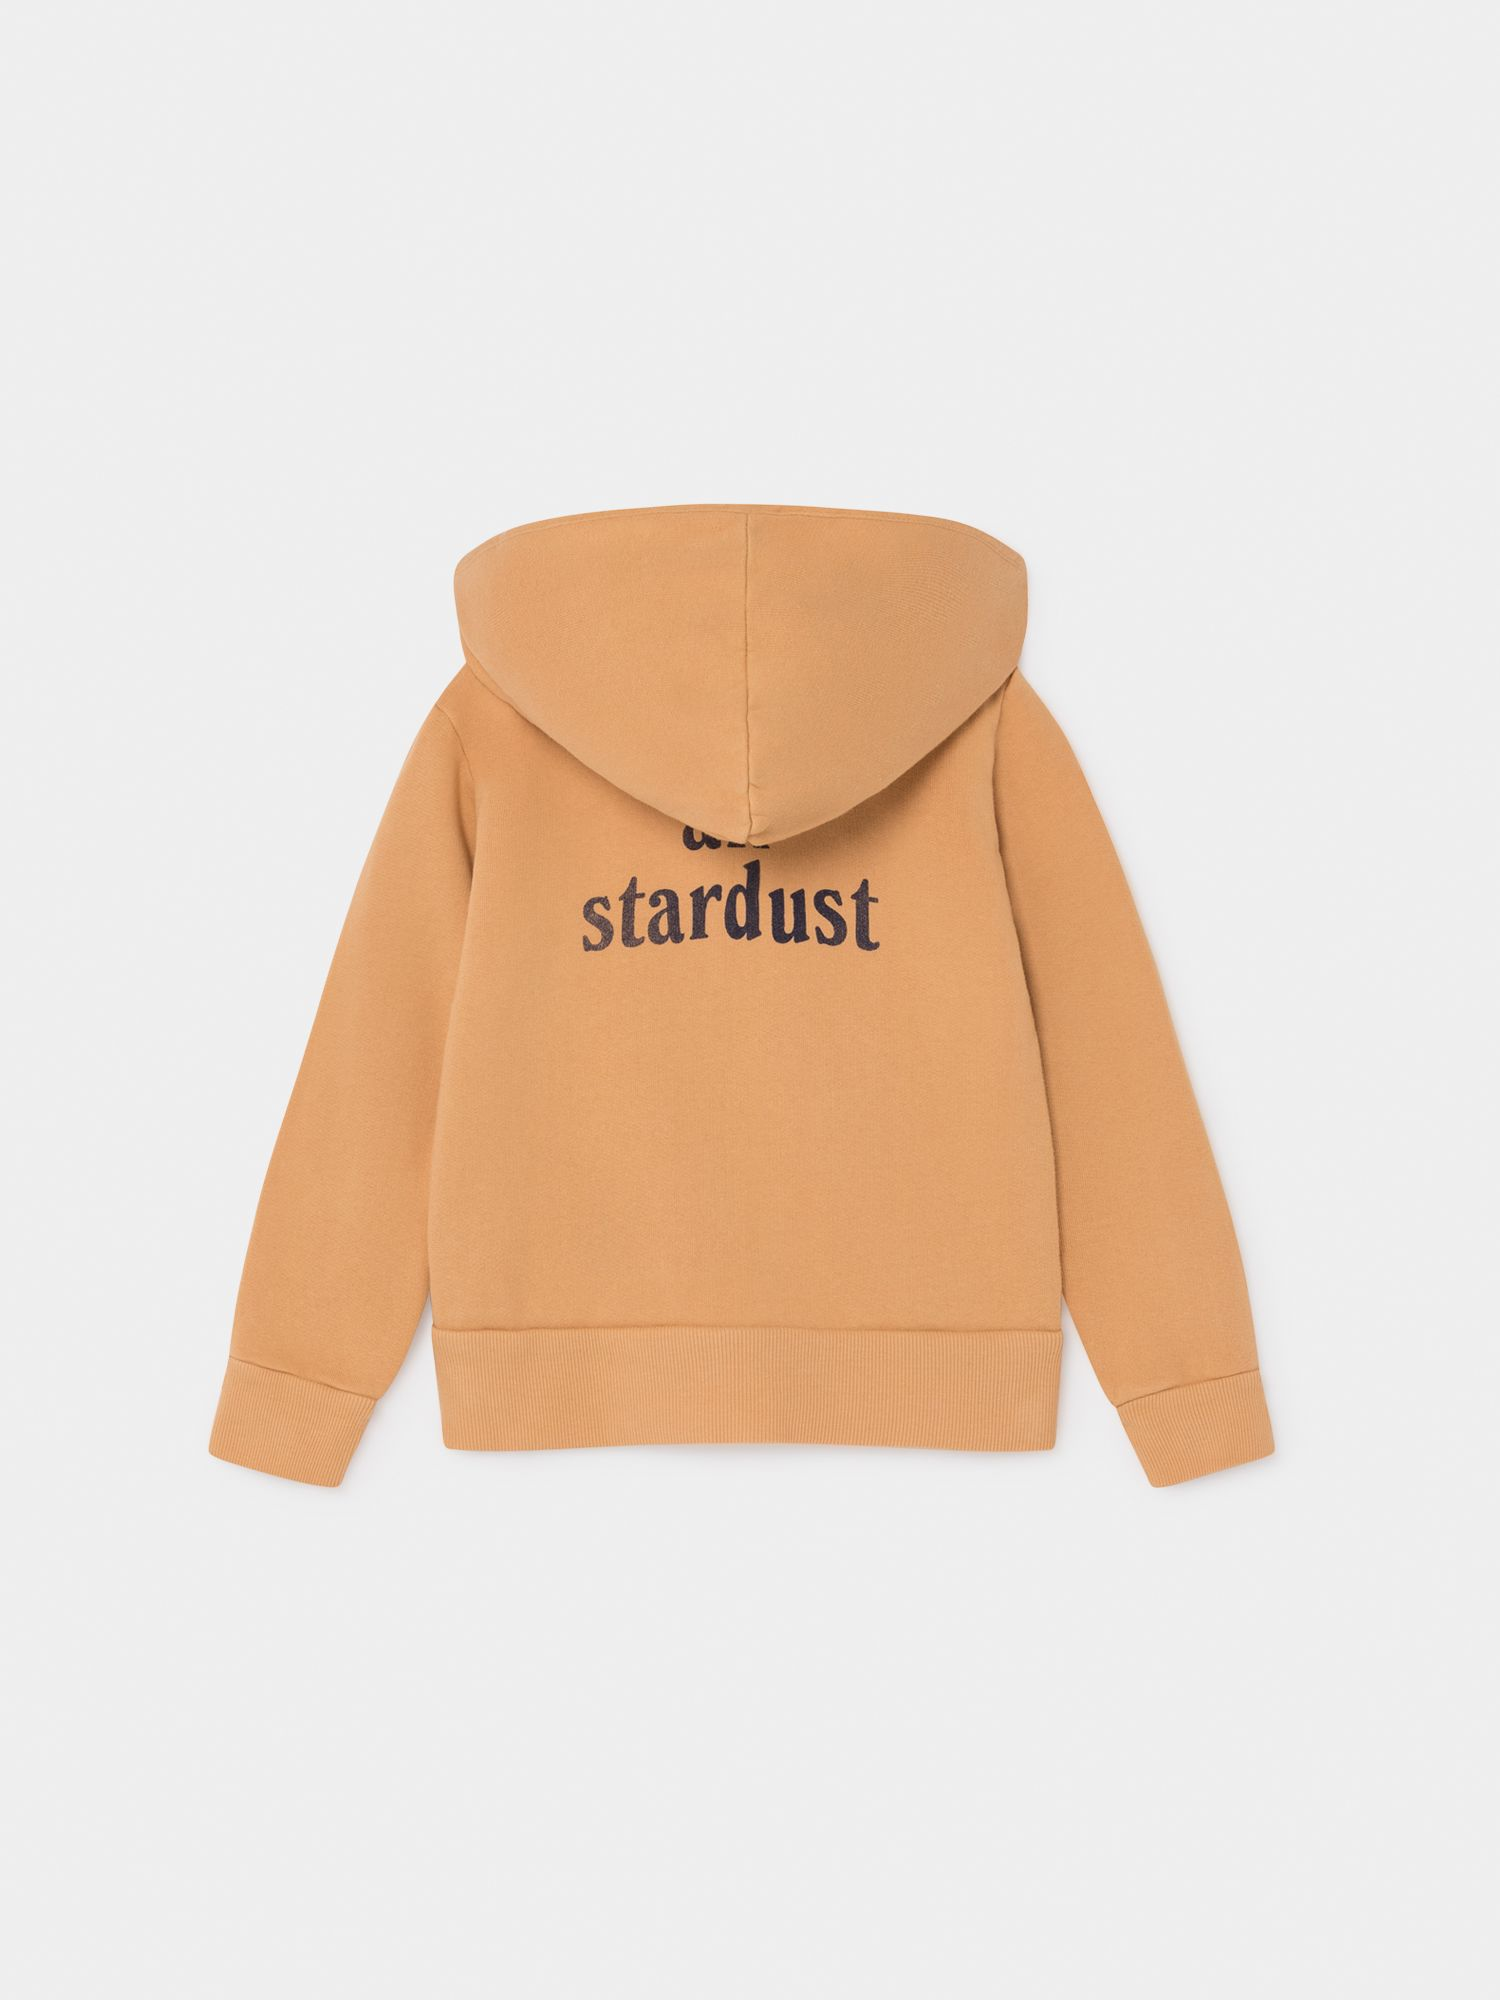 We Are All Stardust Hooded Sweatshirt